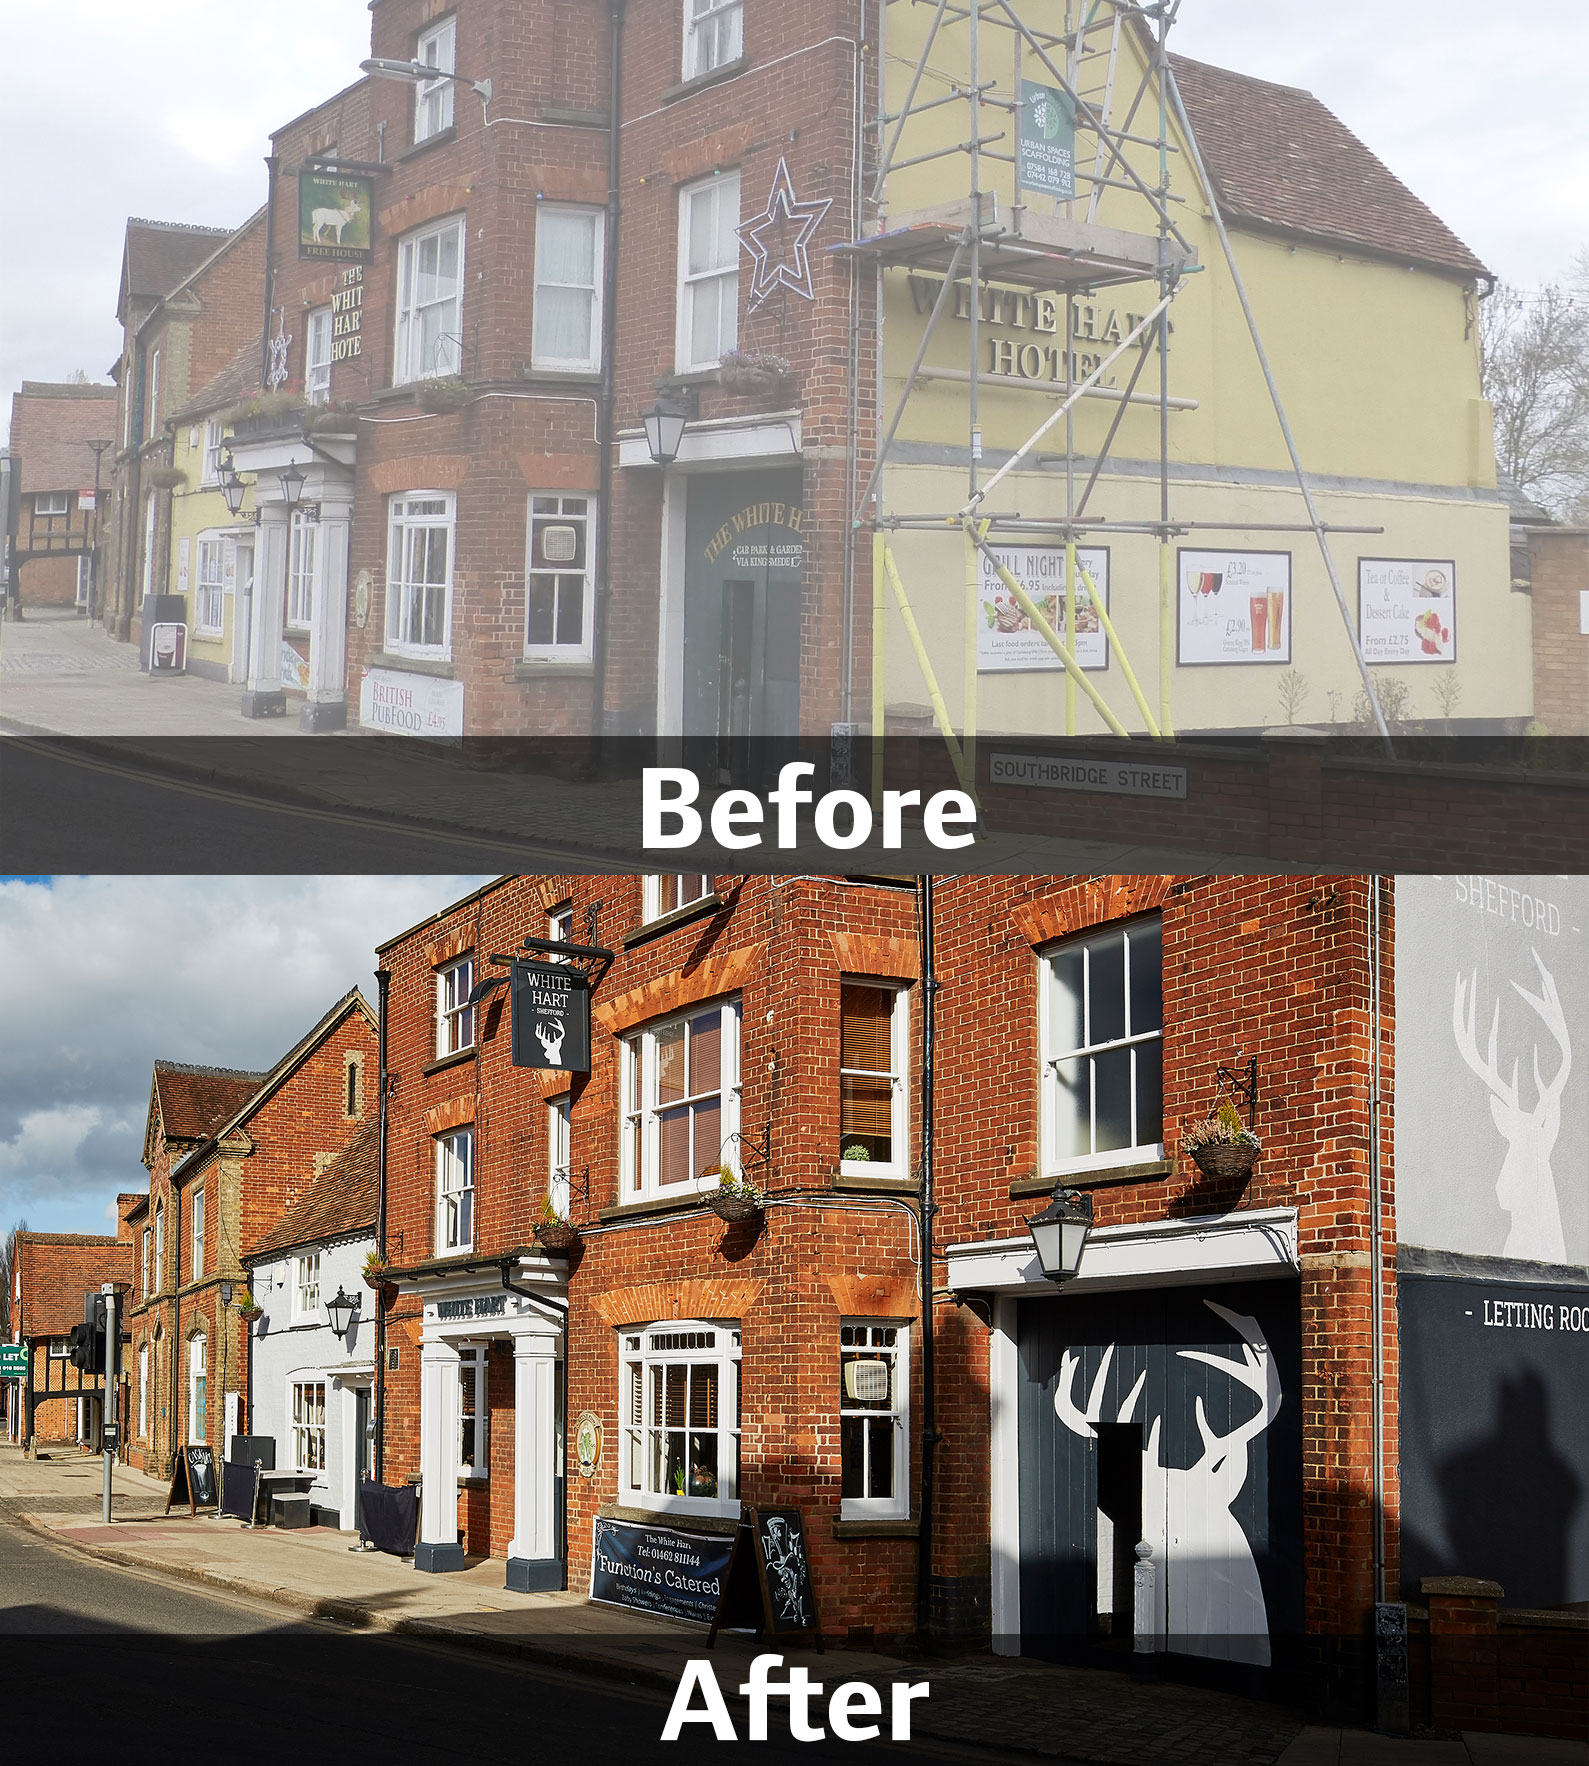 White Hart, Shefford, before and after